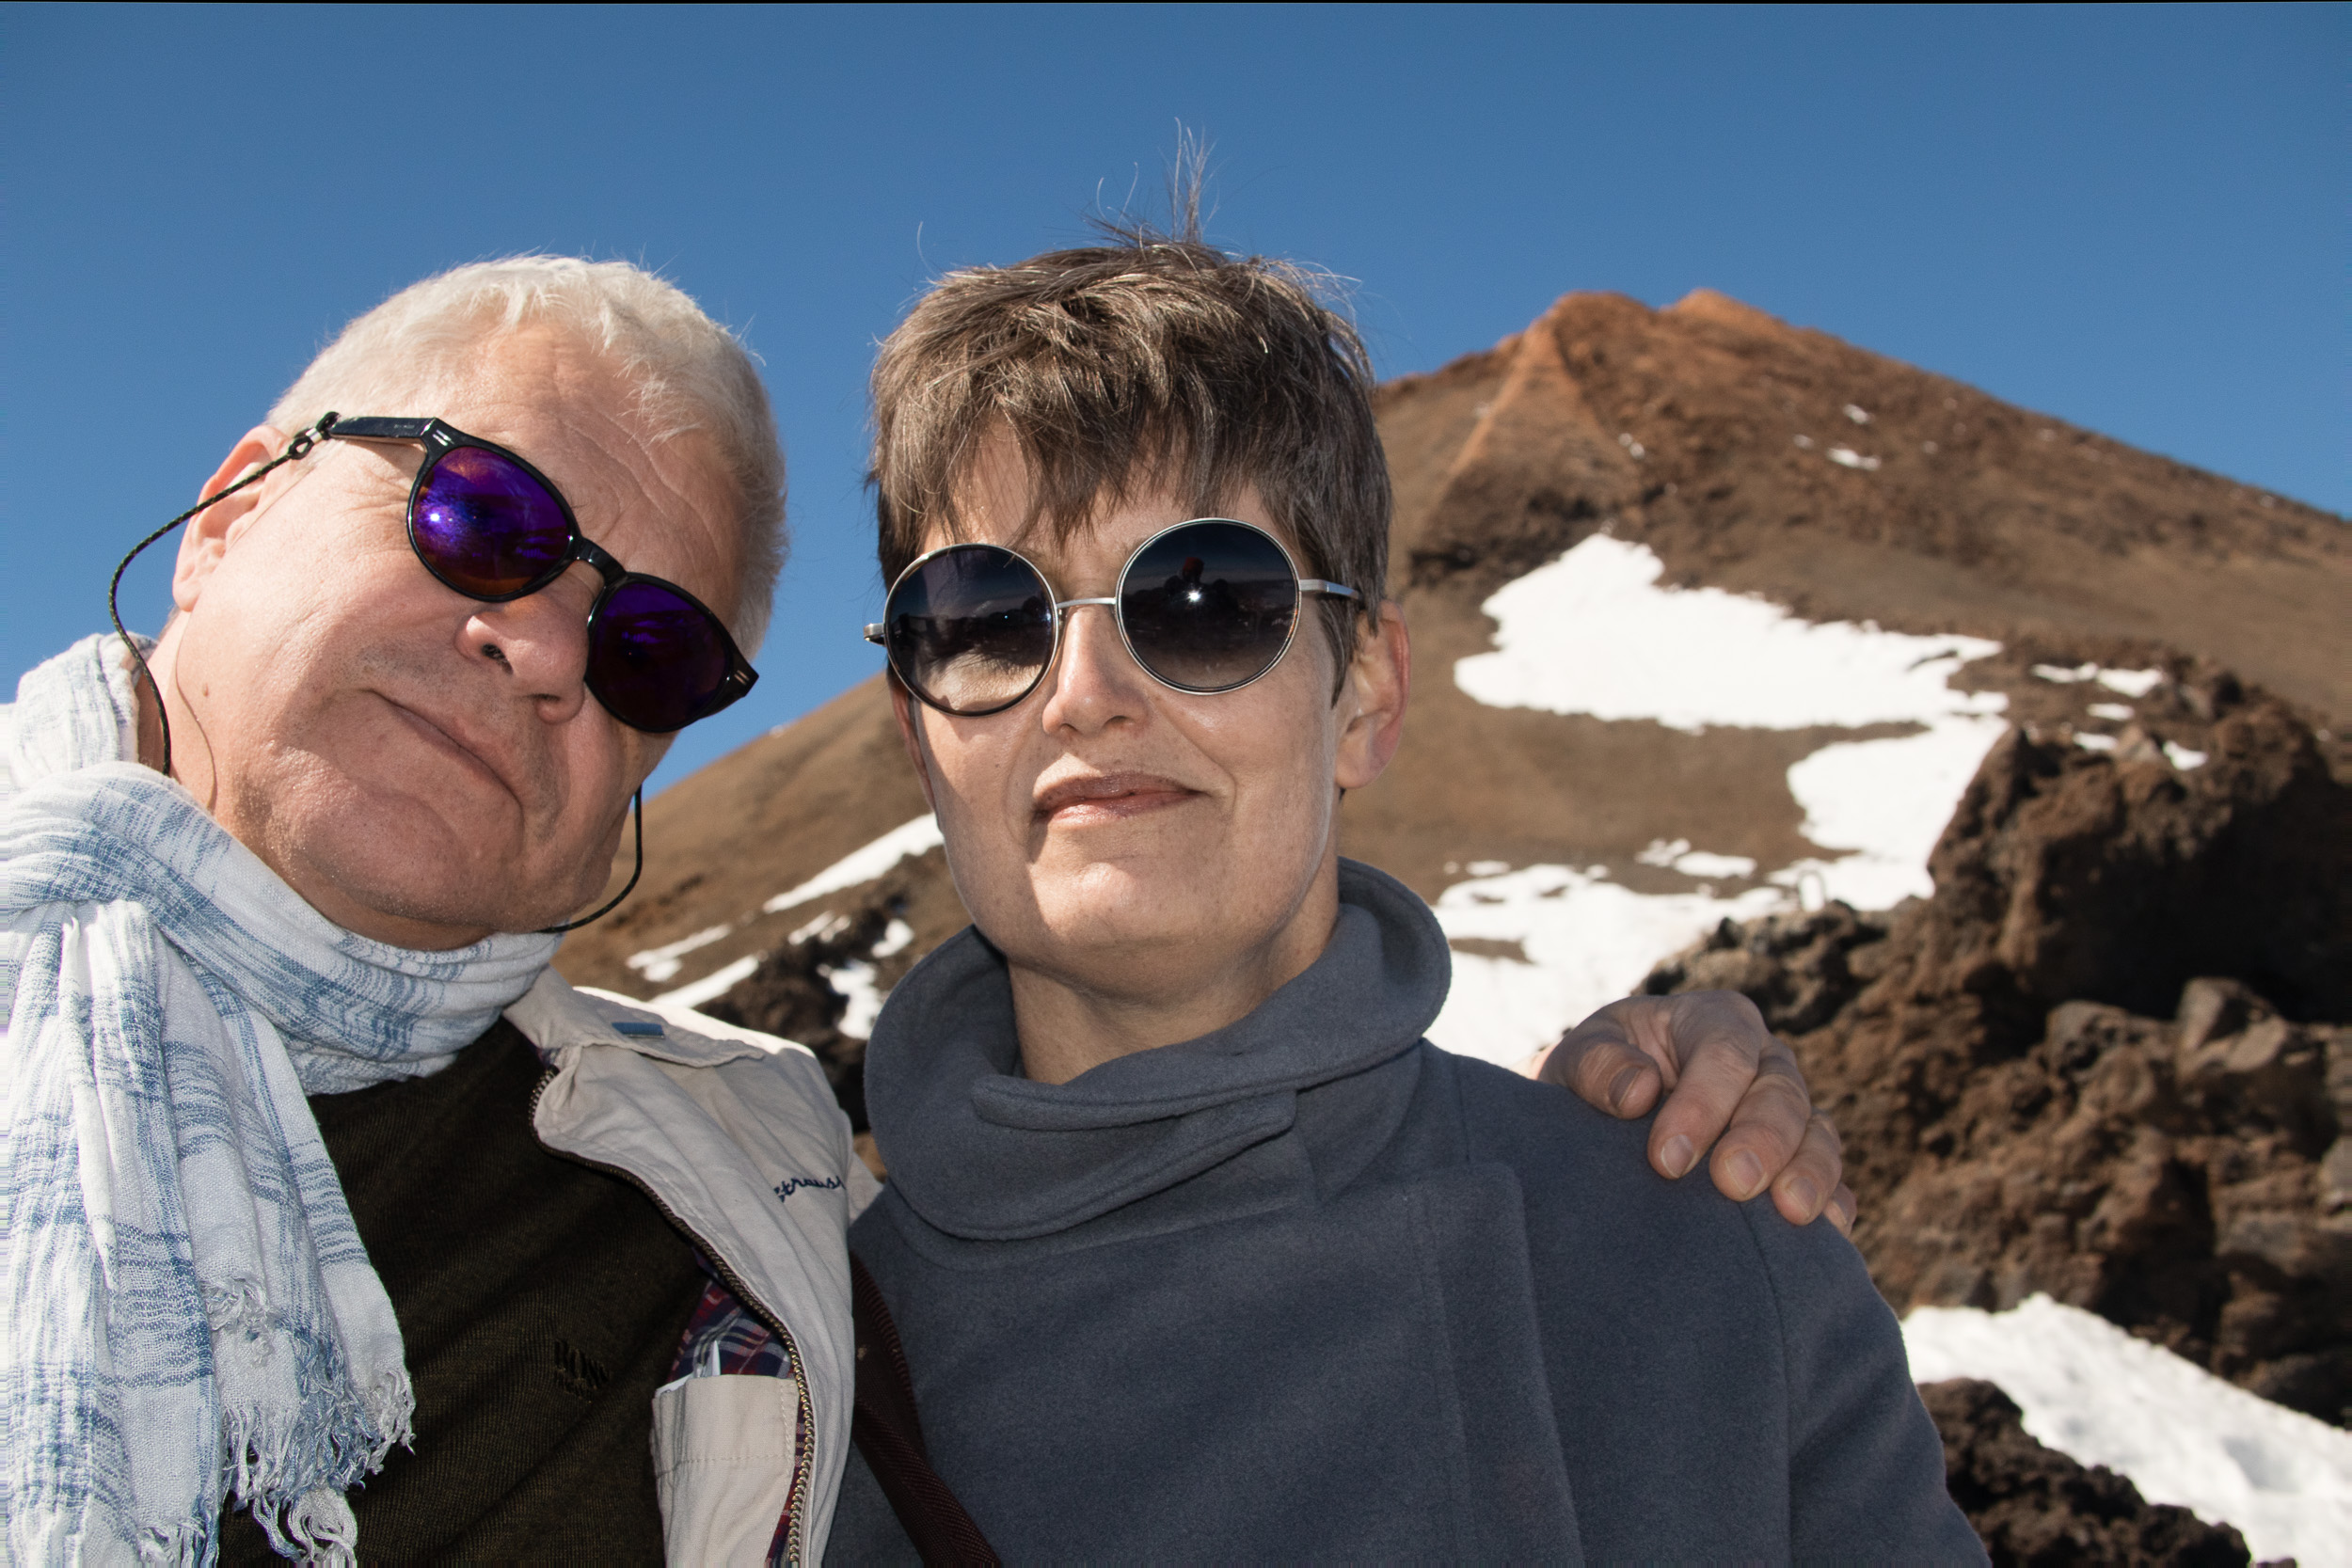 The built in flash was not only used by night but it also to take away shadows from the face on daylight portraits. Here we are at 3500 m of altitude, with the top of Teide mountain on the background.